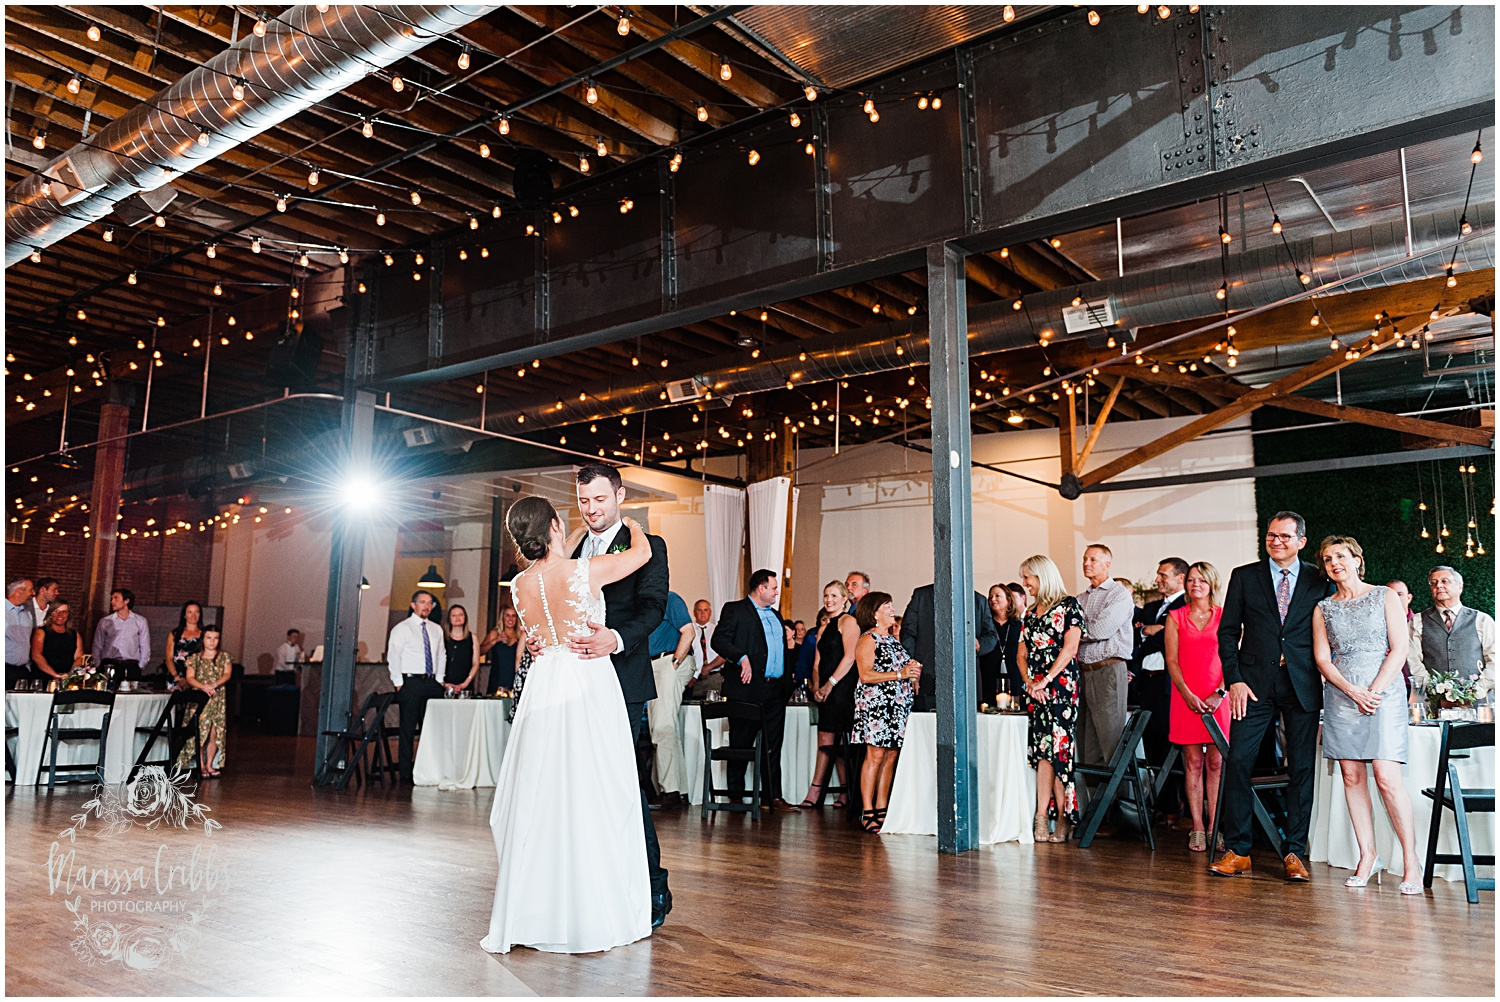 KELLY & MITCH MARRIED BLOG | MARISSA CRIBBS PHOTOGRAPHY | THE EVERLY EVENT SPACE_8905.jpg